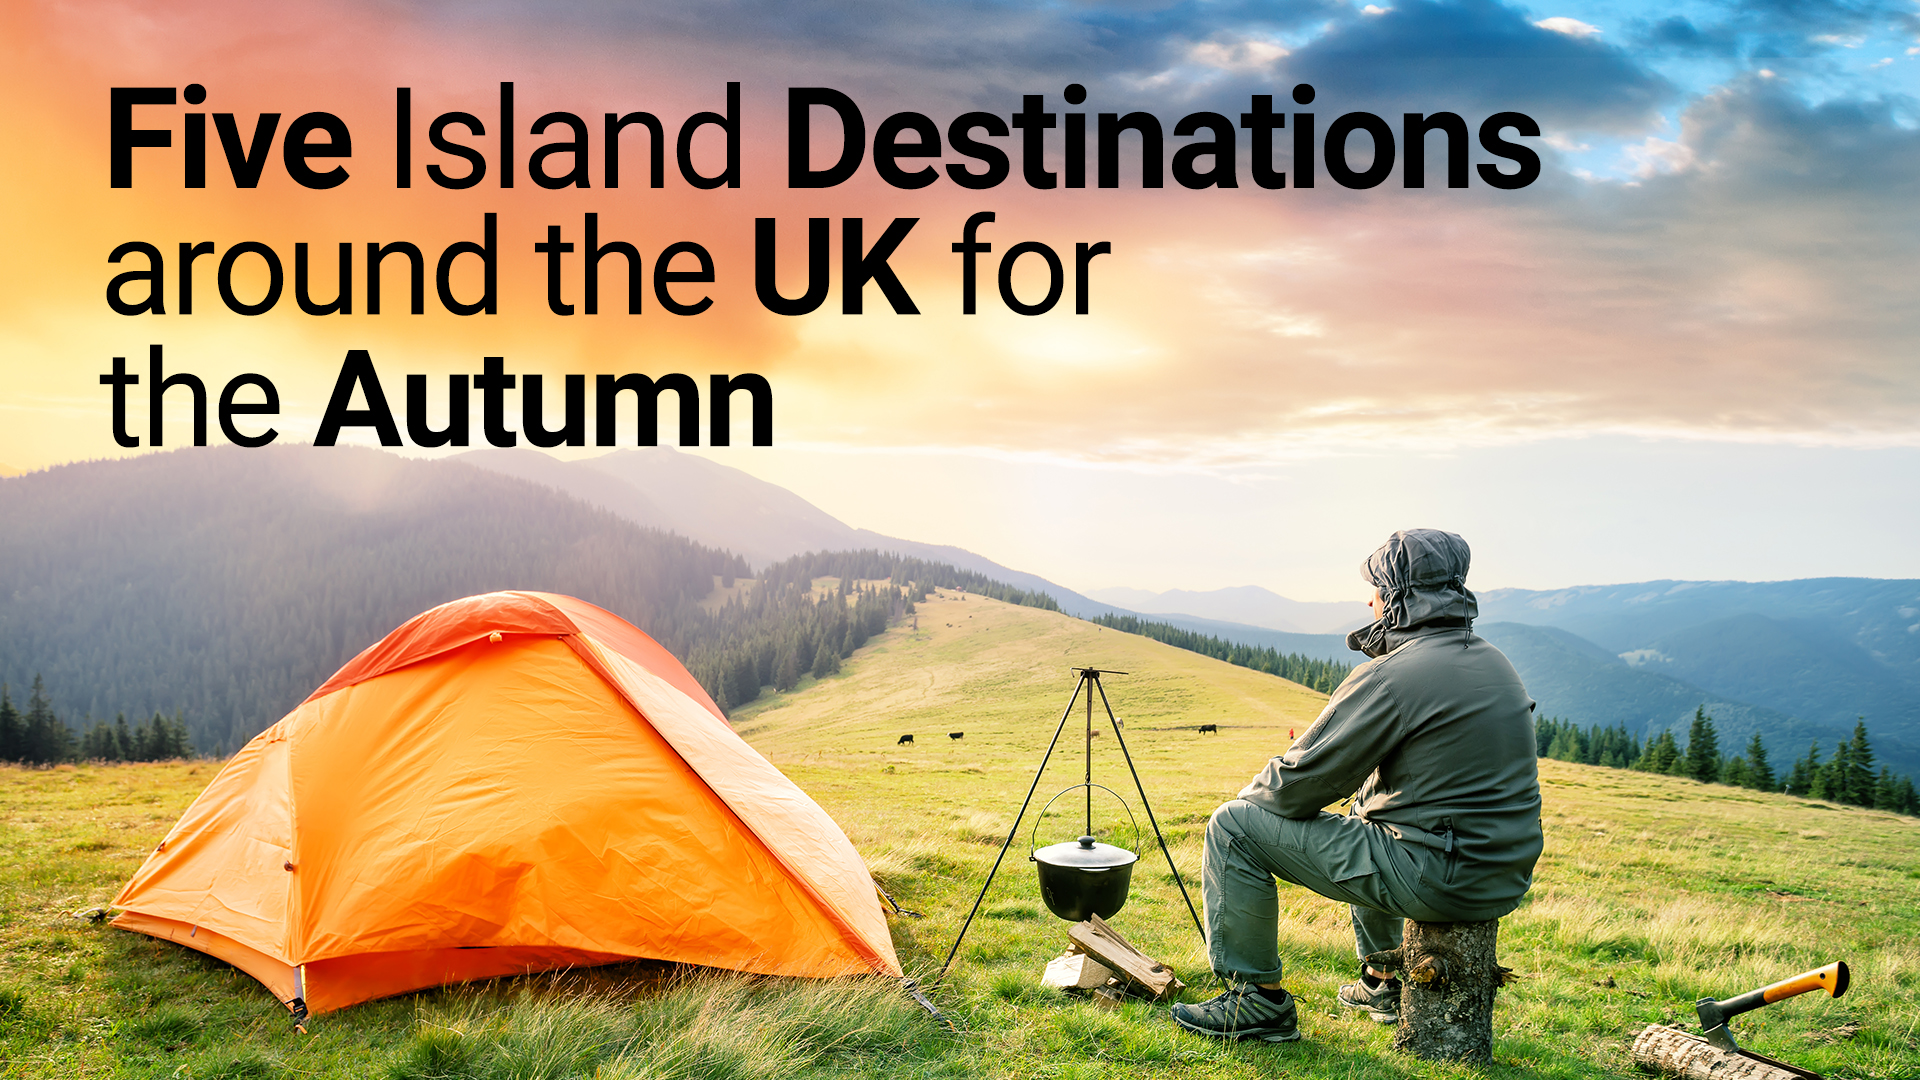 Five Island destinations around the UK in Autumn